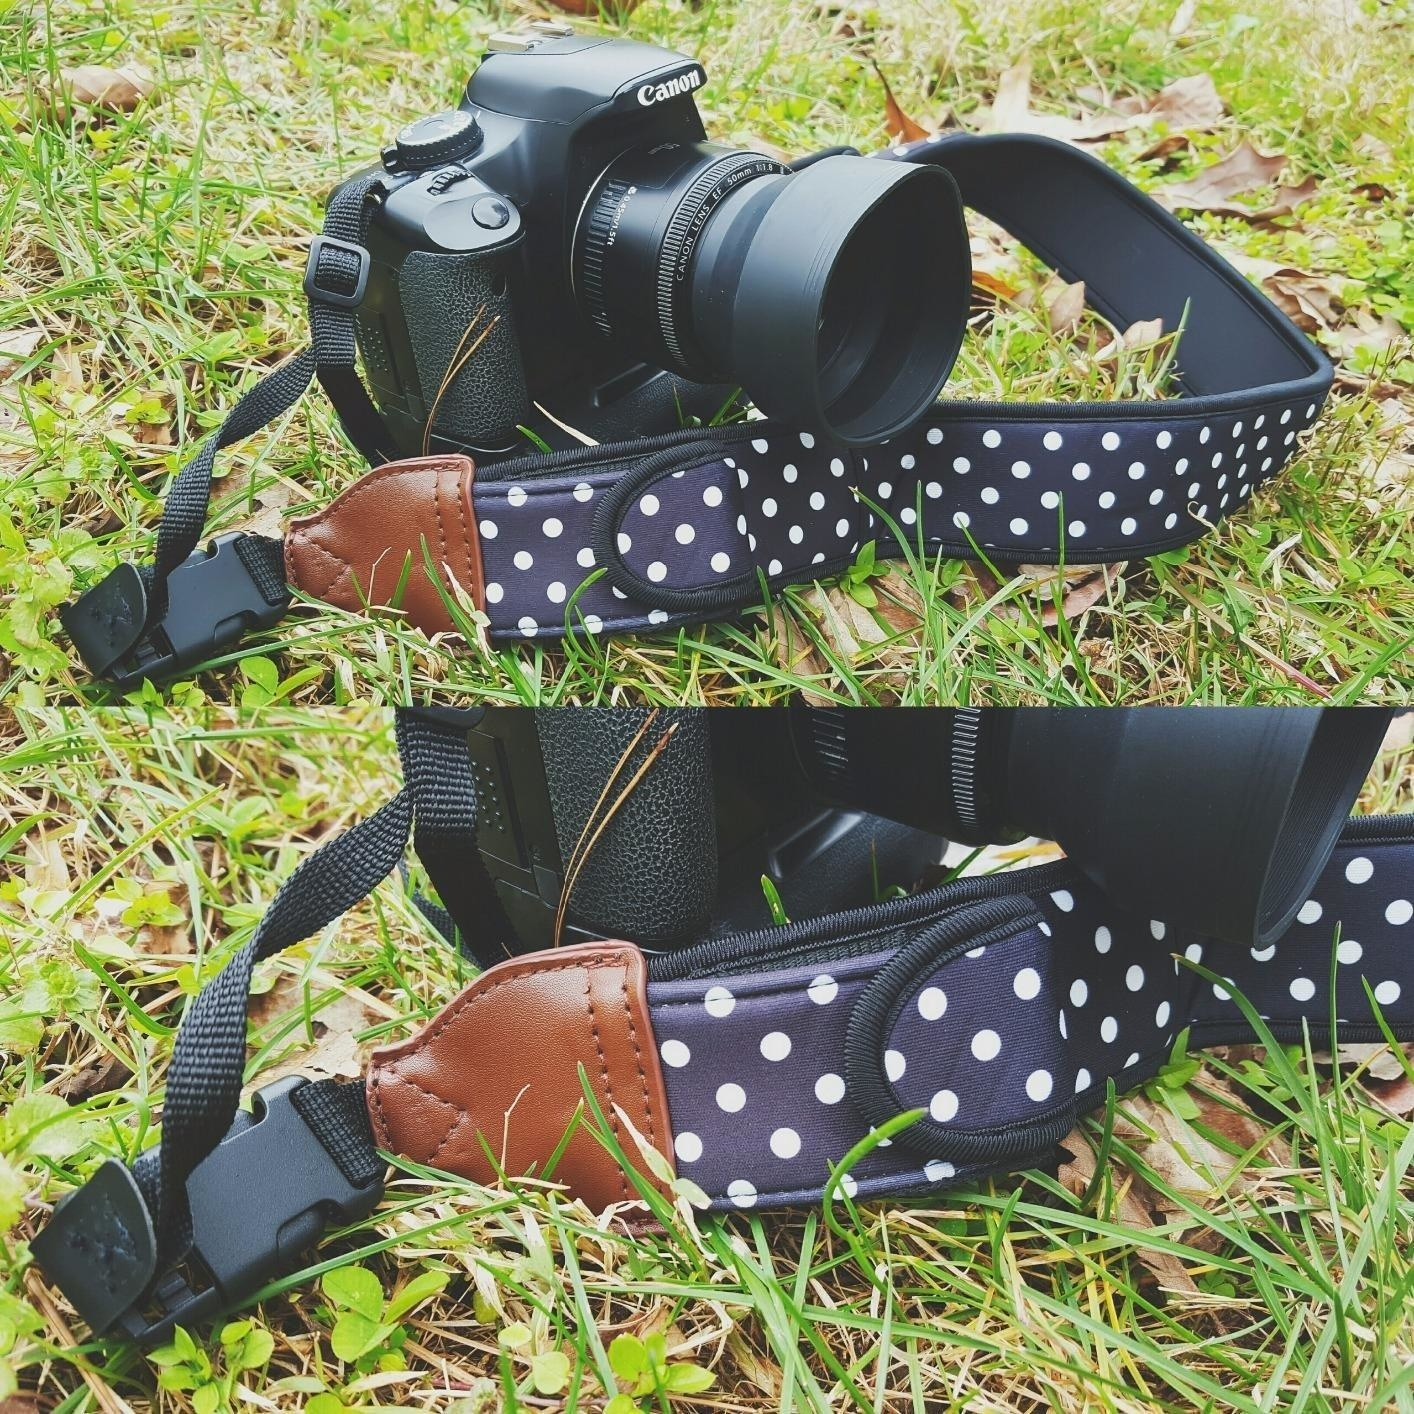 reviewer's polkadot camera strap on their canon camera